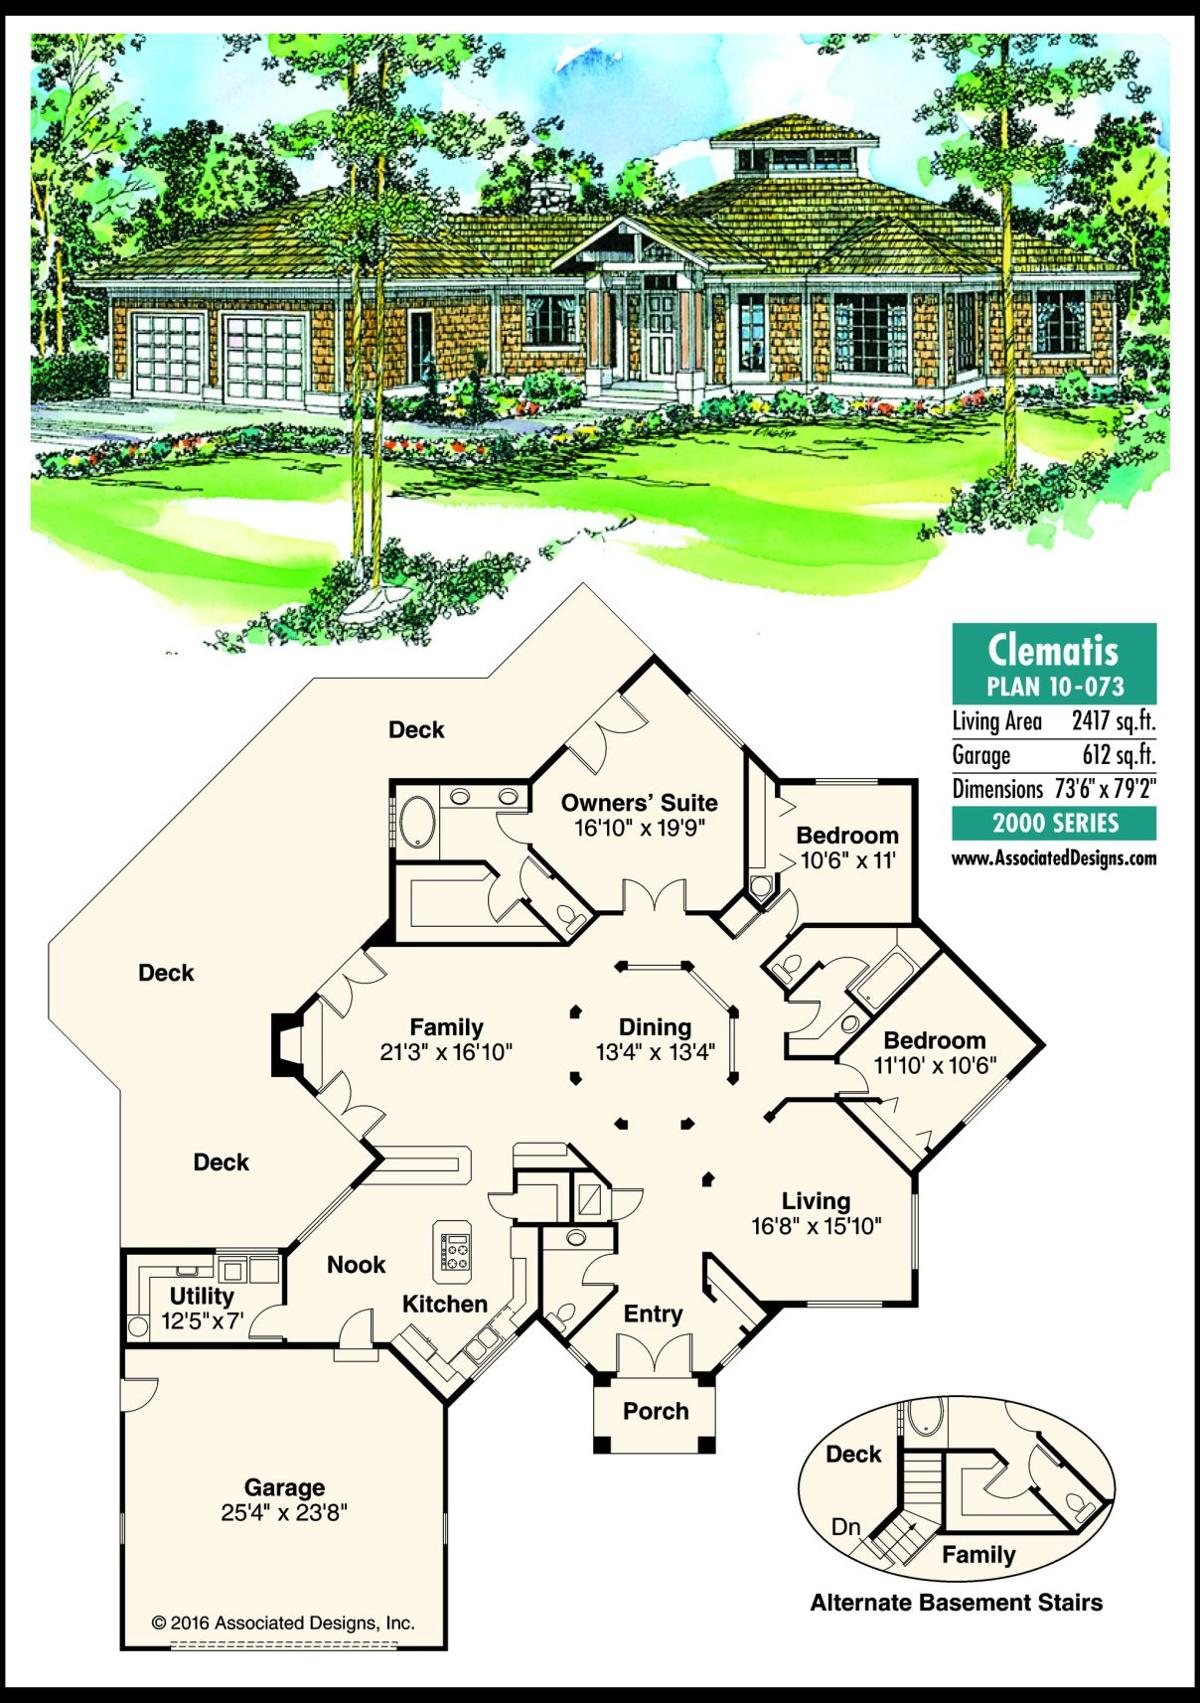 This week's house plan Clematis 10-073